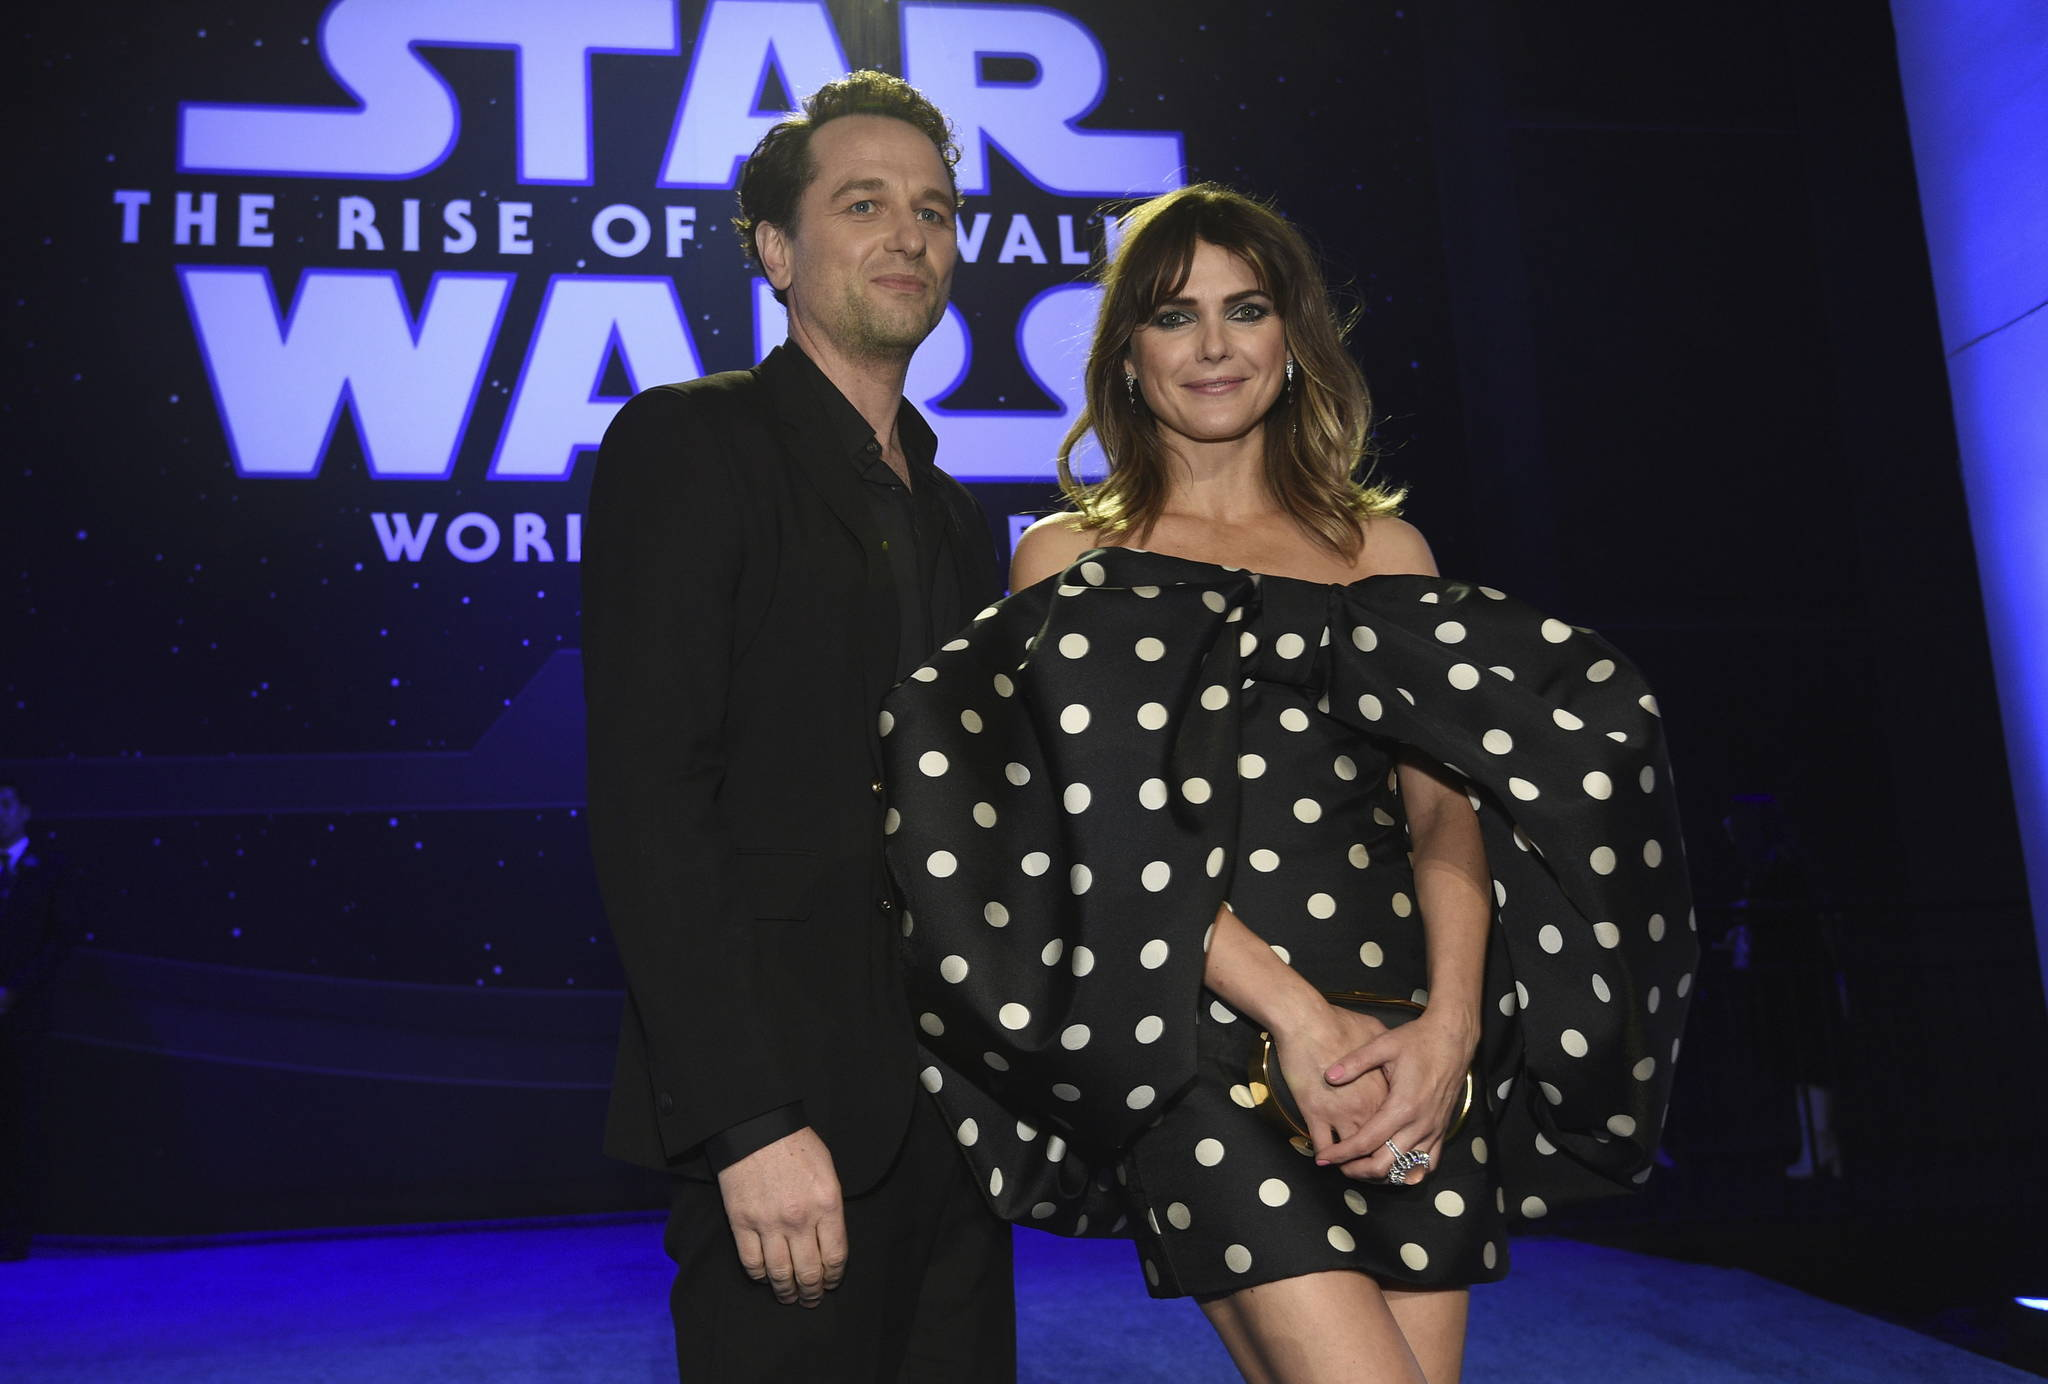 """Matthew Rhys, left, and Keri Russell arrive at the world premiere of """"Star Wars: The Rise of Skywalker"""" on Monday, Dec. 16, 2019, in Los Angeles (AP Photo/Chris Pizzello)"""